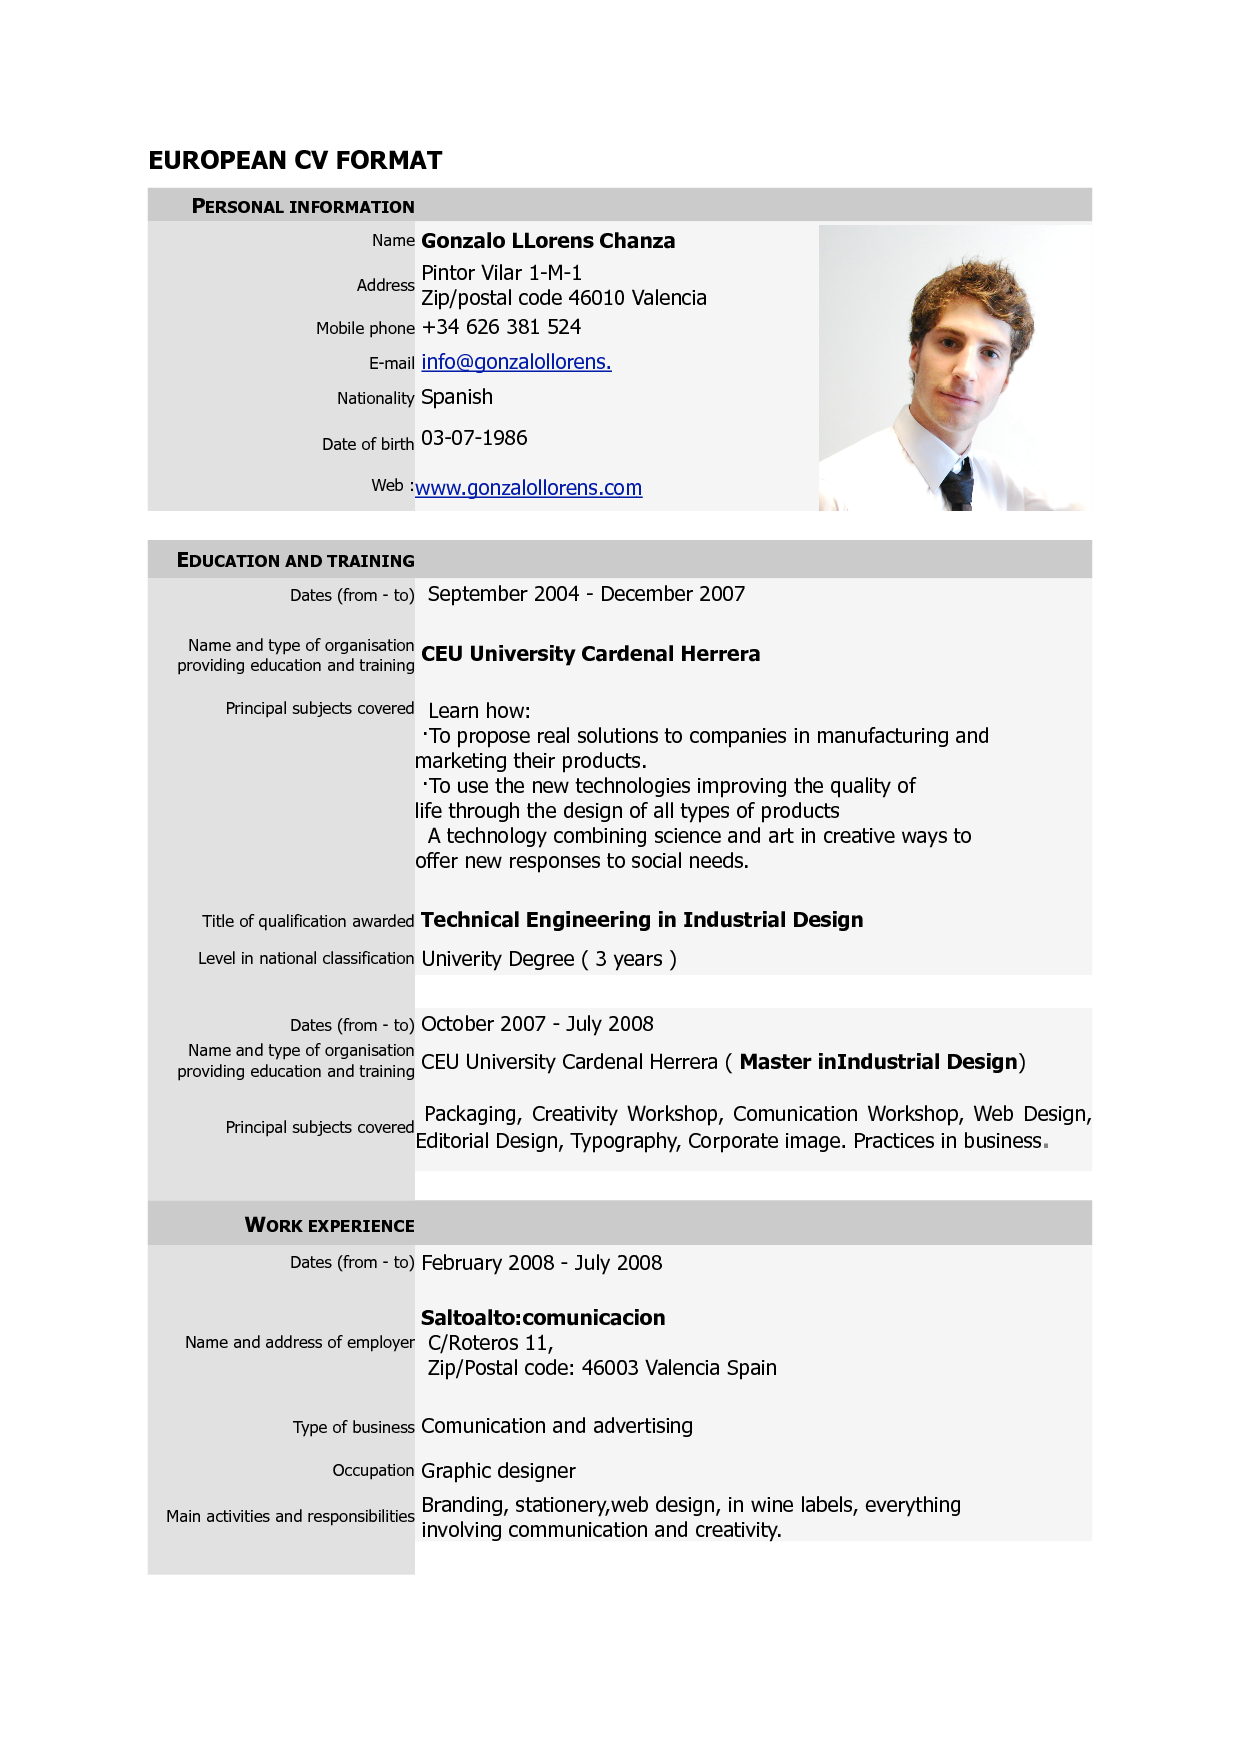 cv format european free download